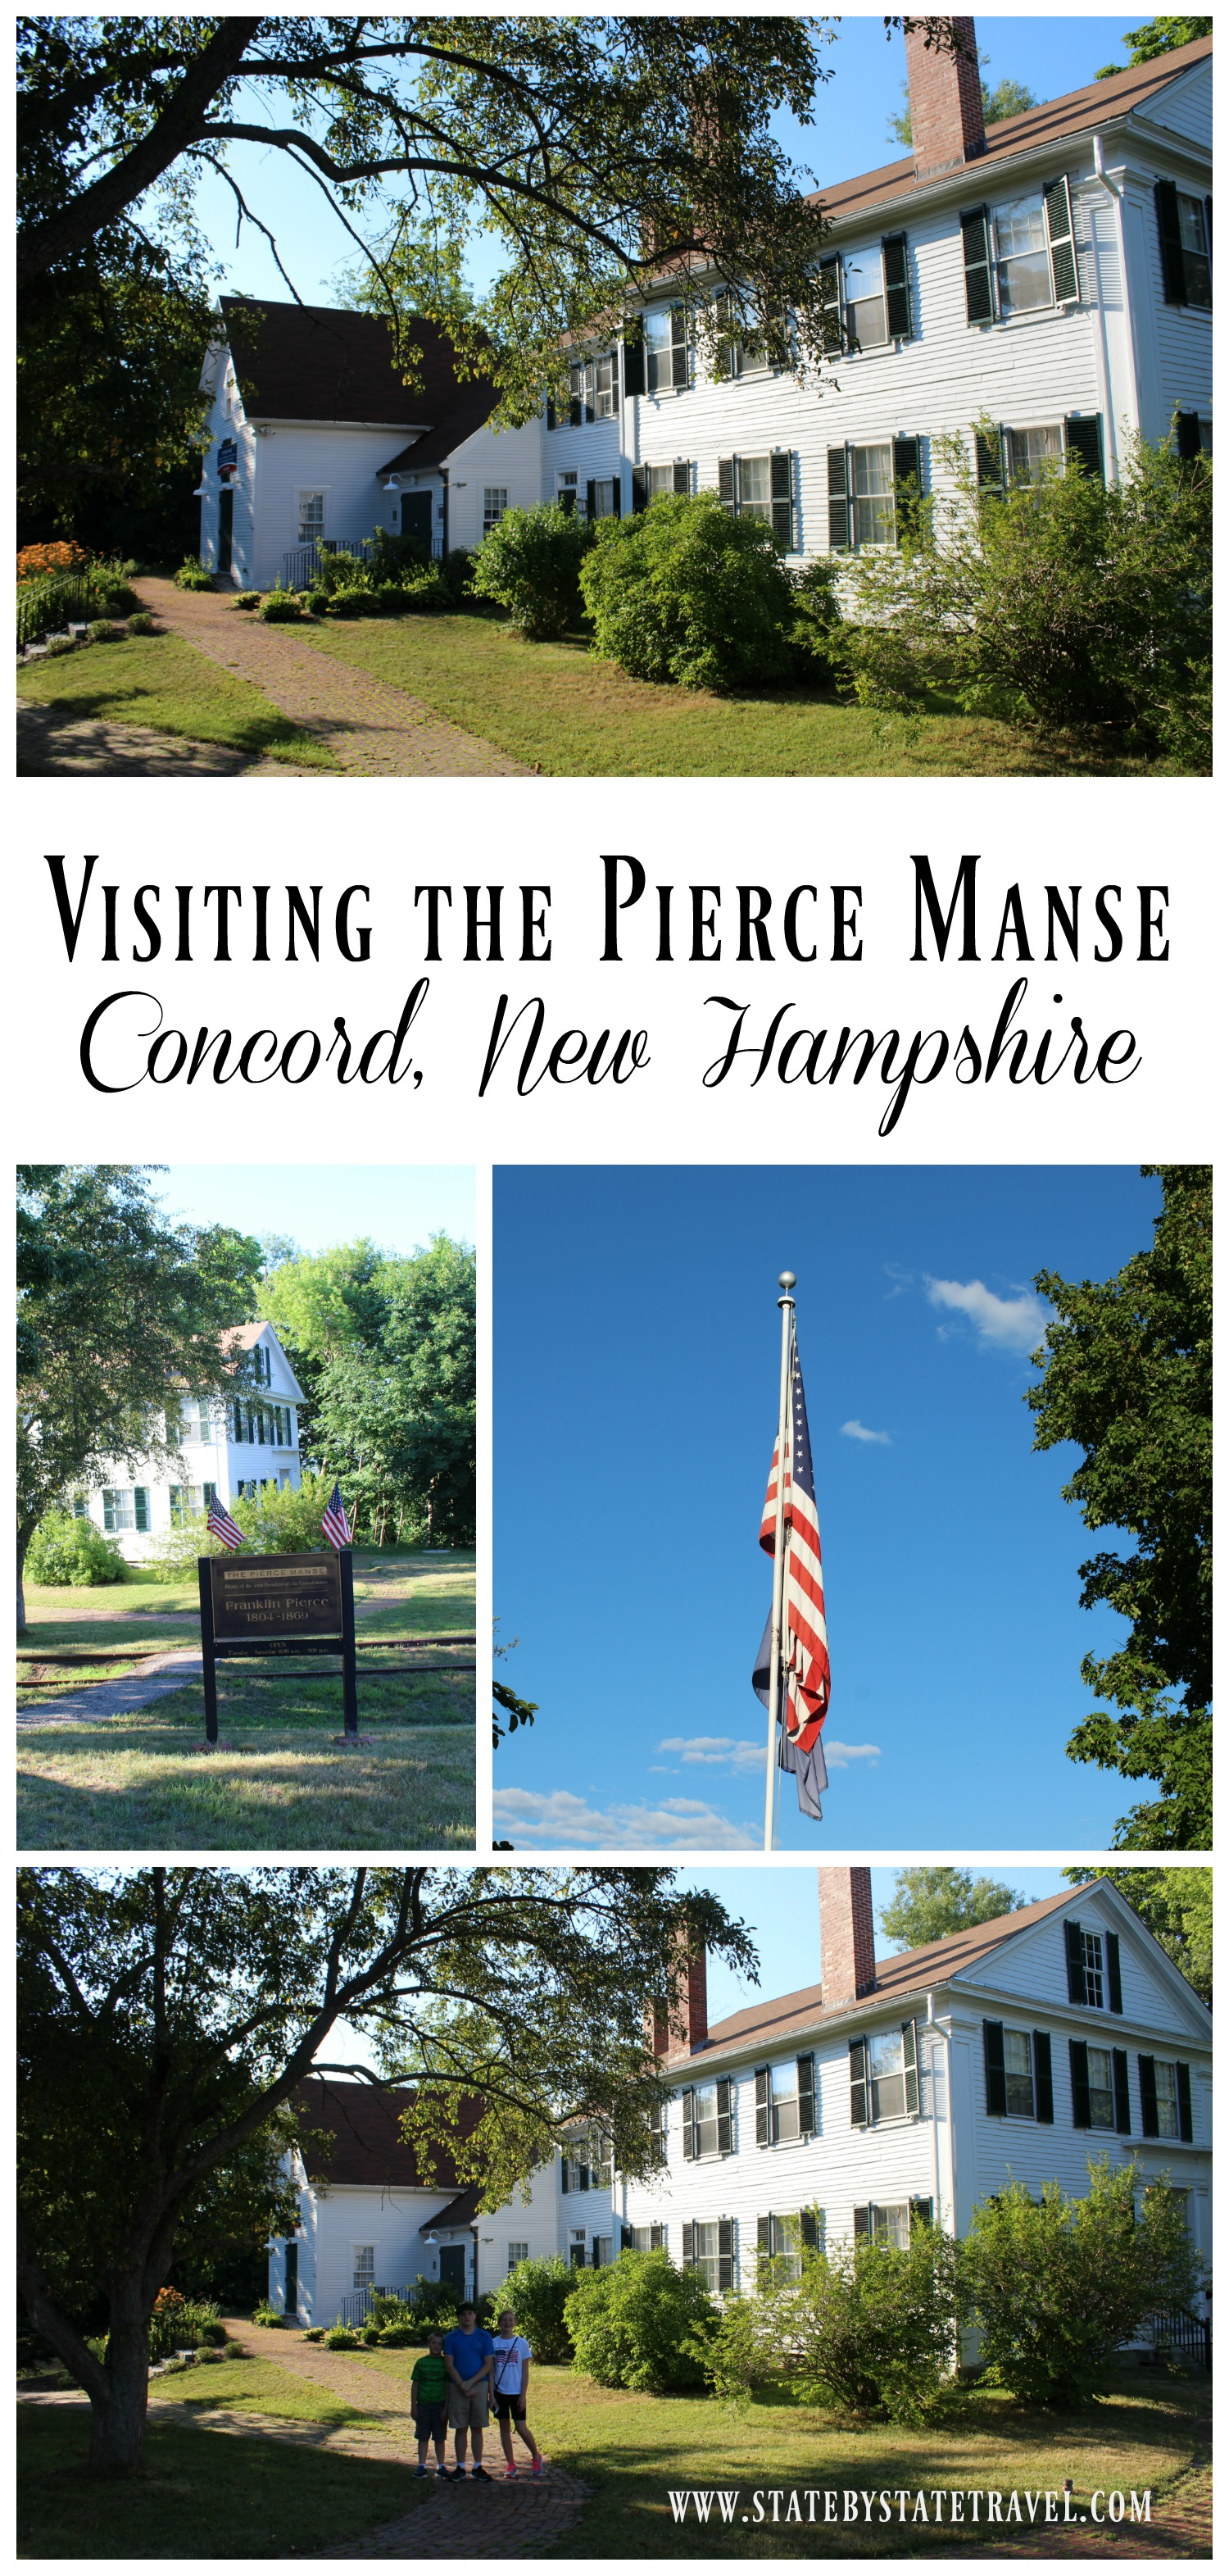 Visiting the Pierce Manse New Hampshire